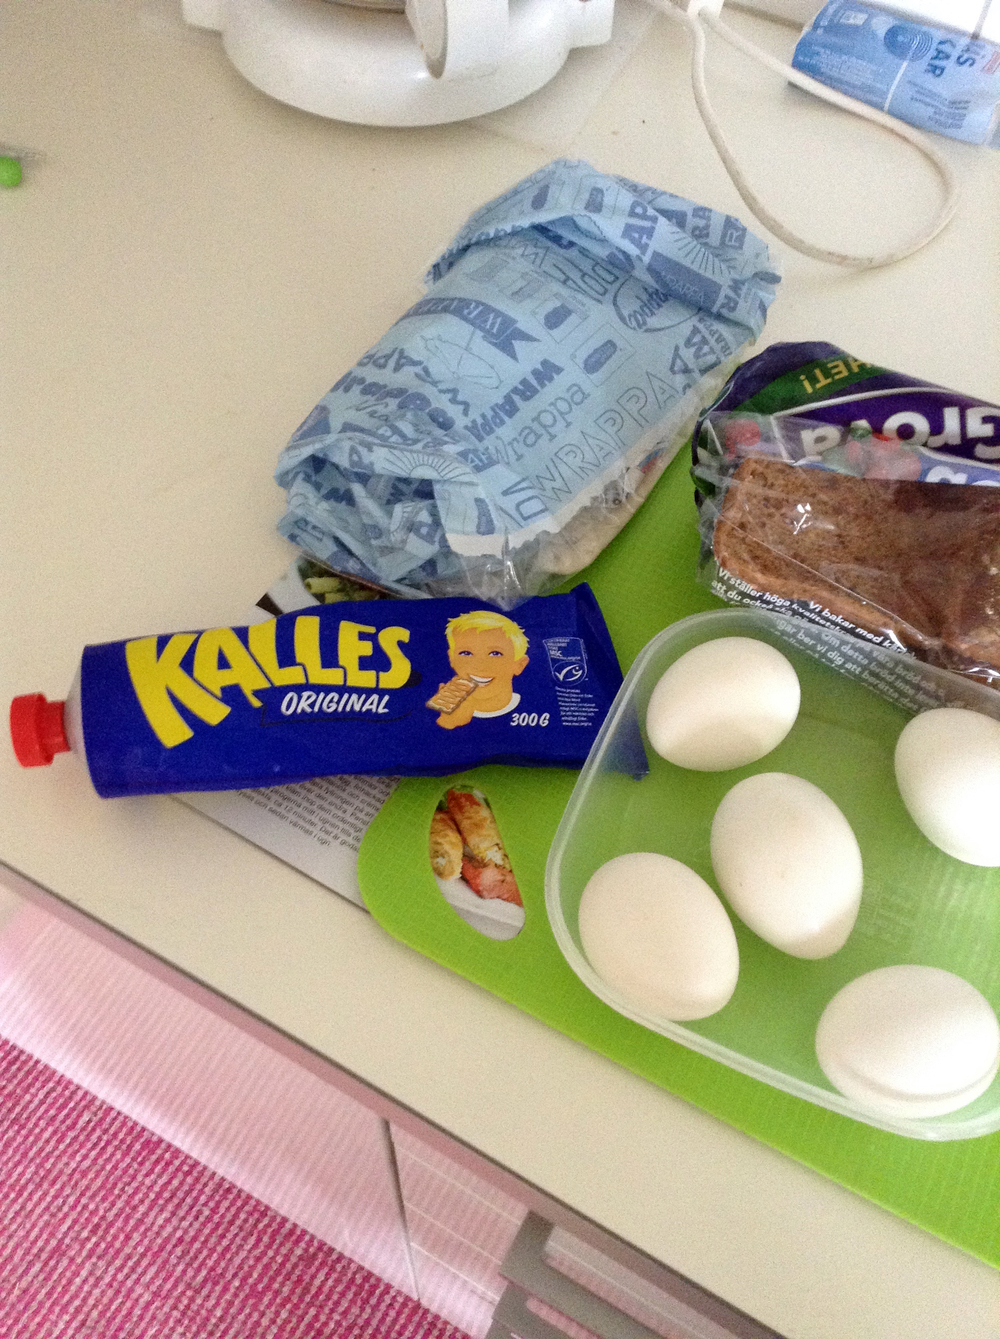 Or just eggs with Kalle's comes-in-a-tube Caviar.